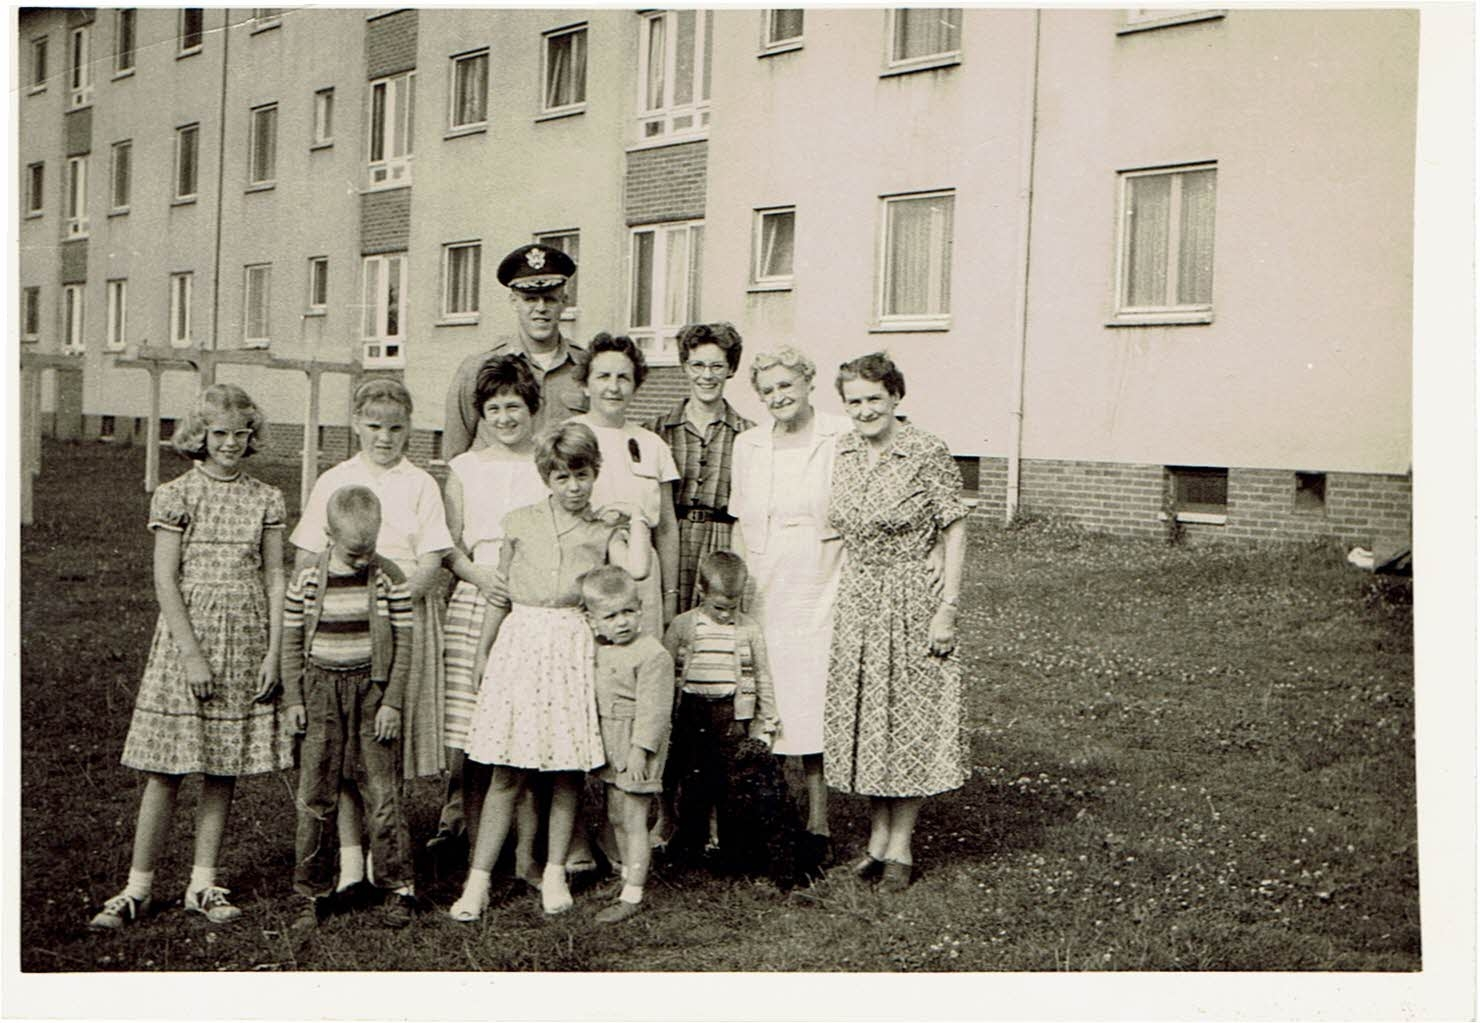 Our extended family in front of our quarters in Landstuhl, Germany, 1960.My father is wearing his hat. I'm on the left, dressed up in saddle shoes.